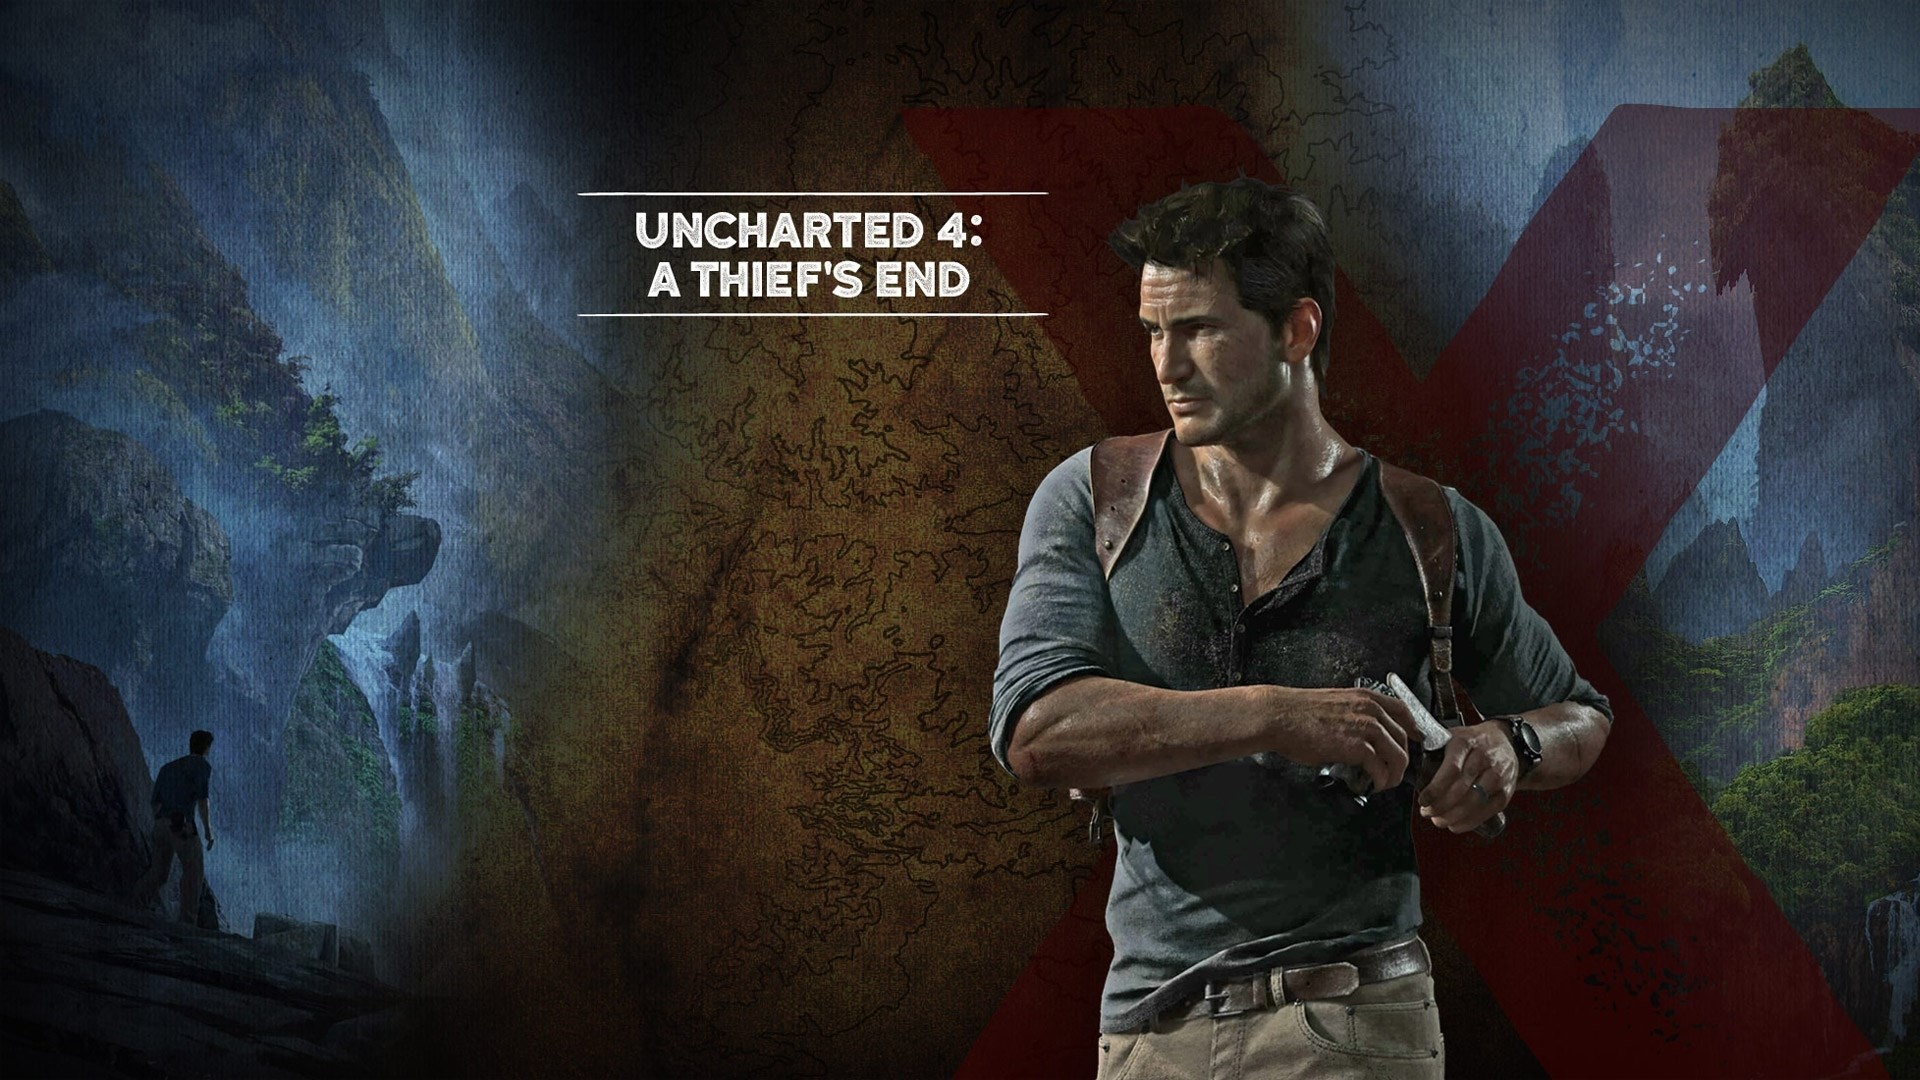 1920x1080  uncharted 4 wallpaper for computer screen